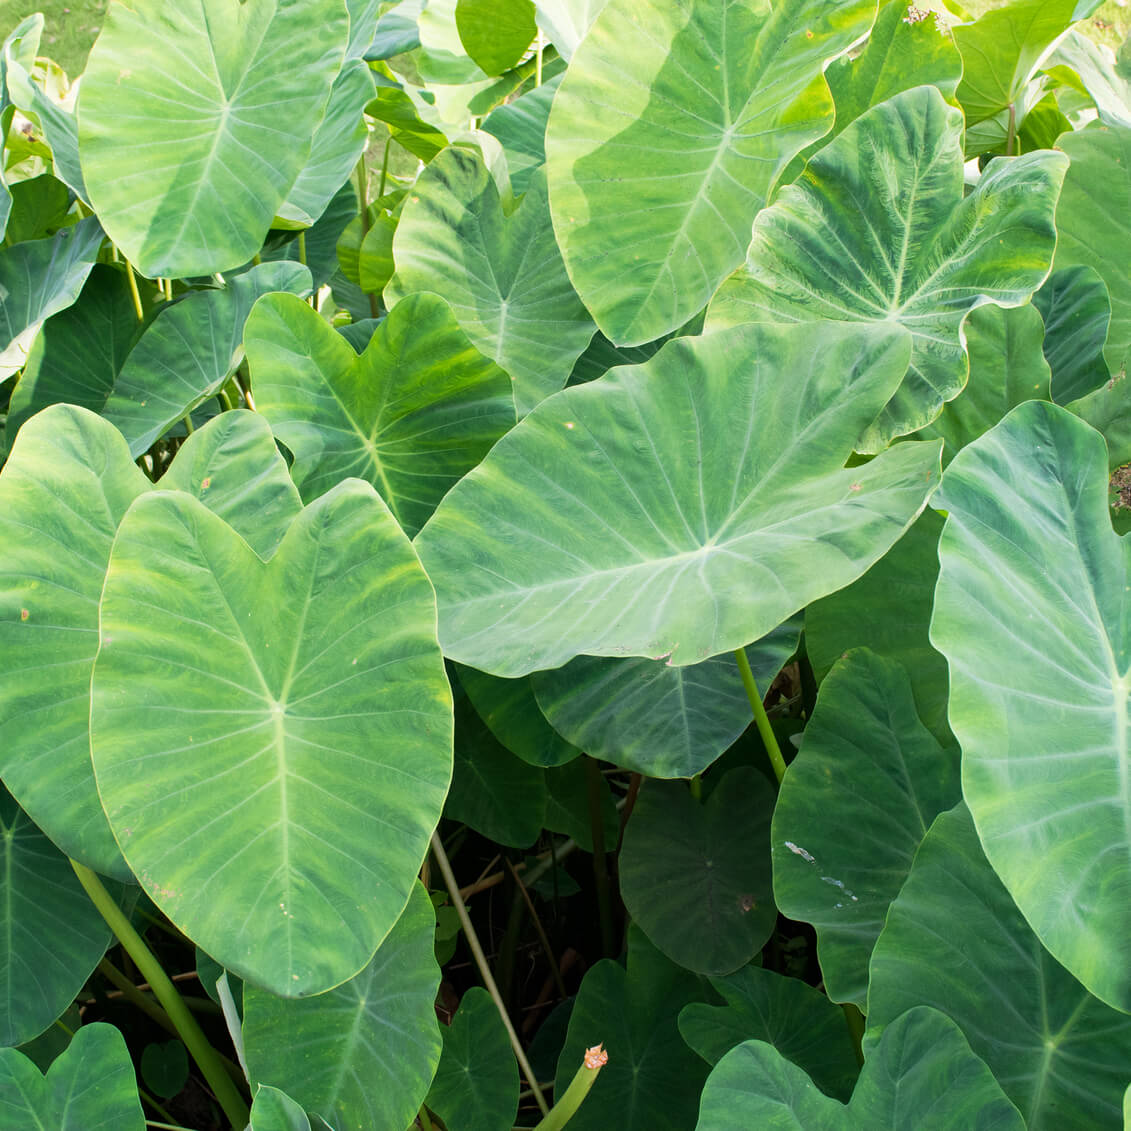 Poisonous plants for dogs - Elephant Ear